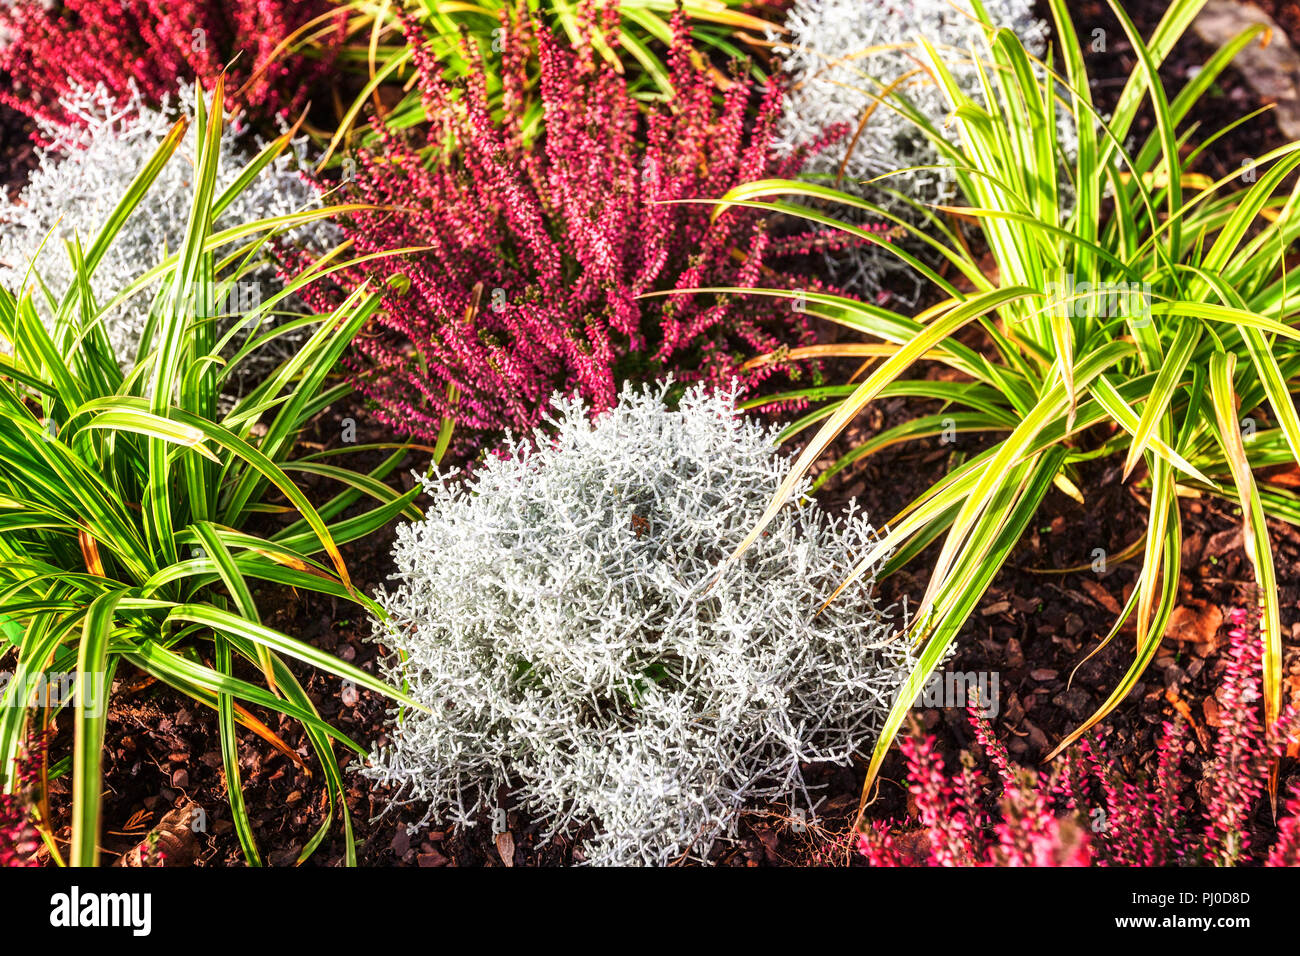 Autumn Flowers Flowerbed With Pink Heather Grass And Plants